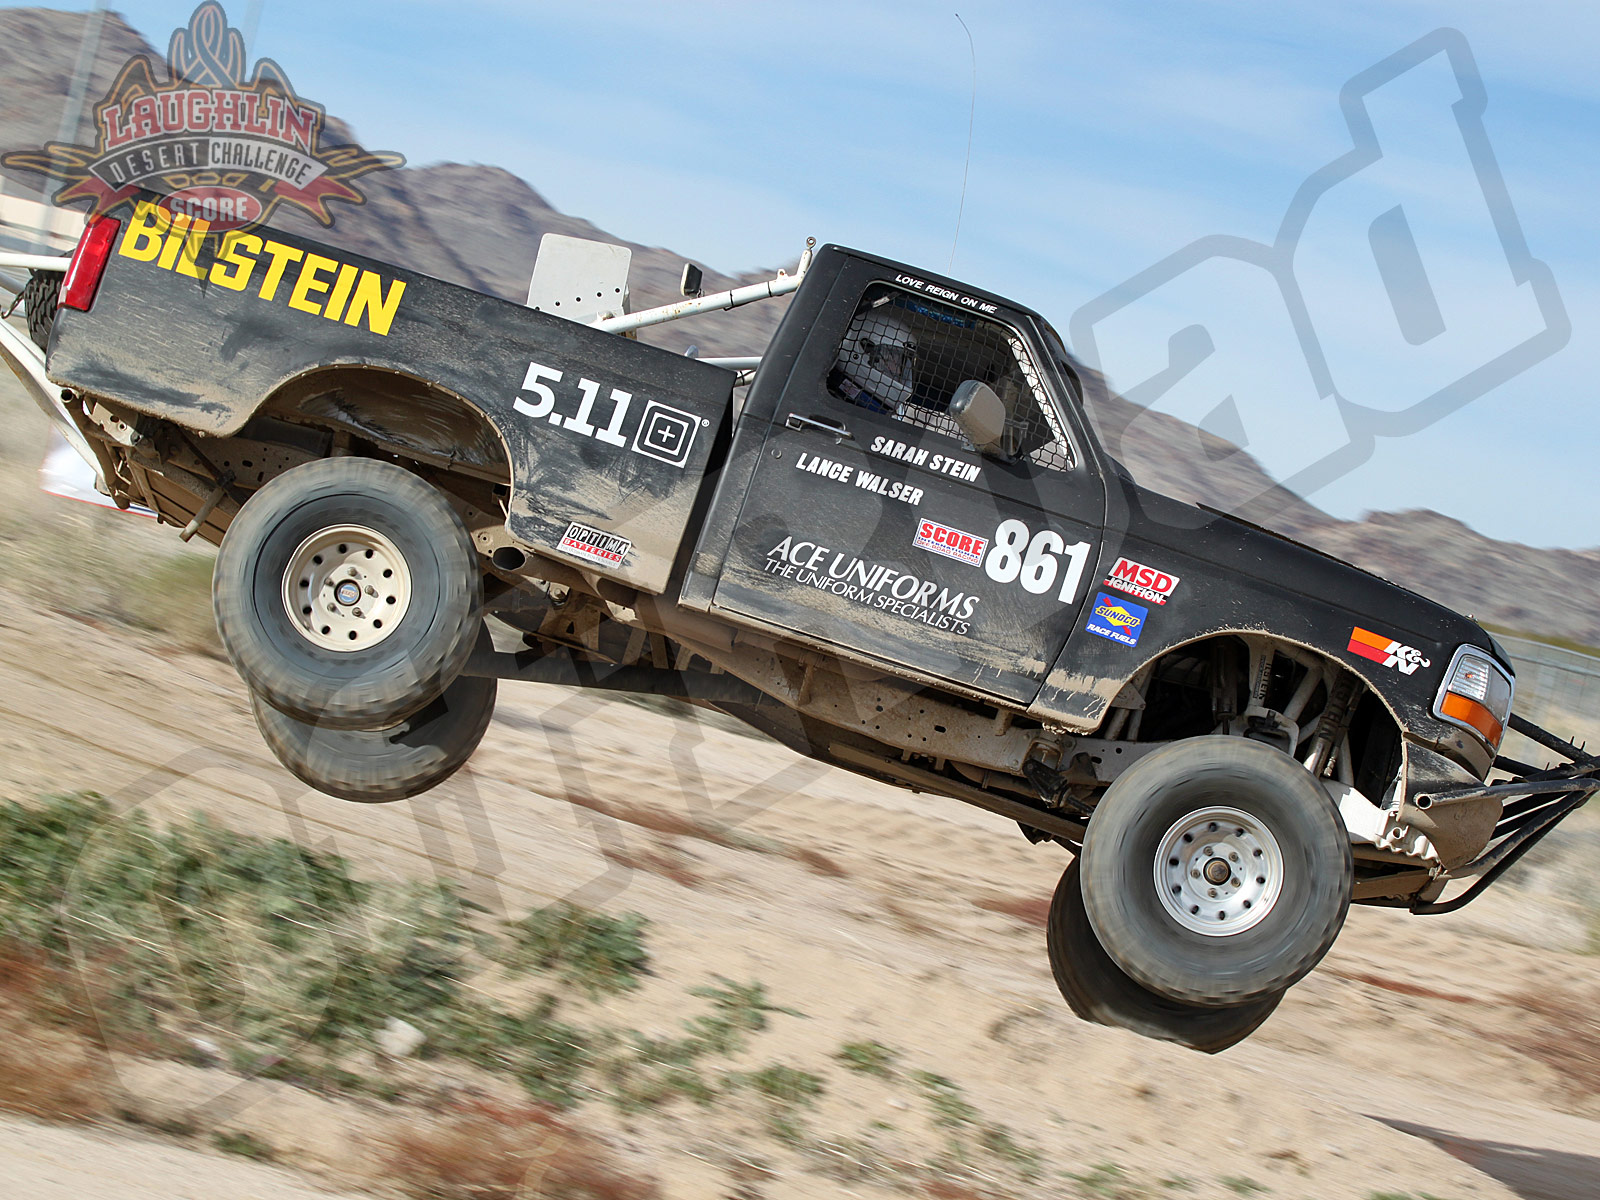 012011or 6621+2011 score laughlin desert challenge+truck classes